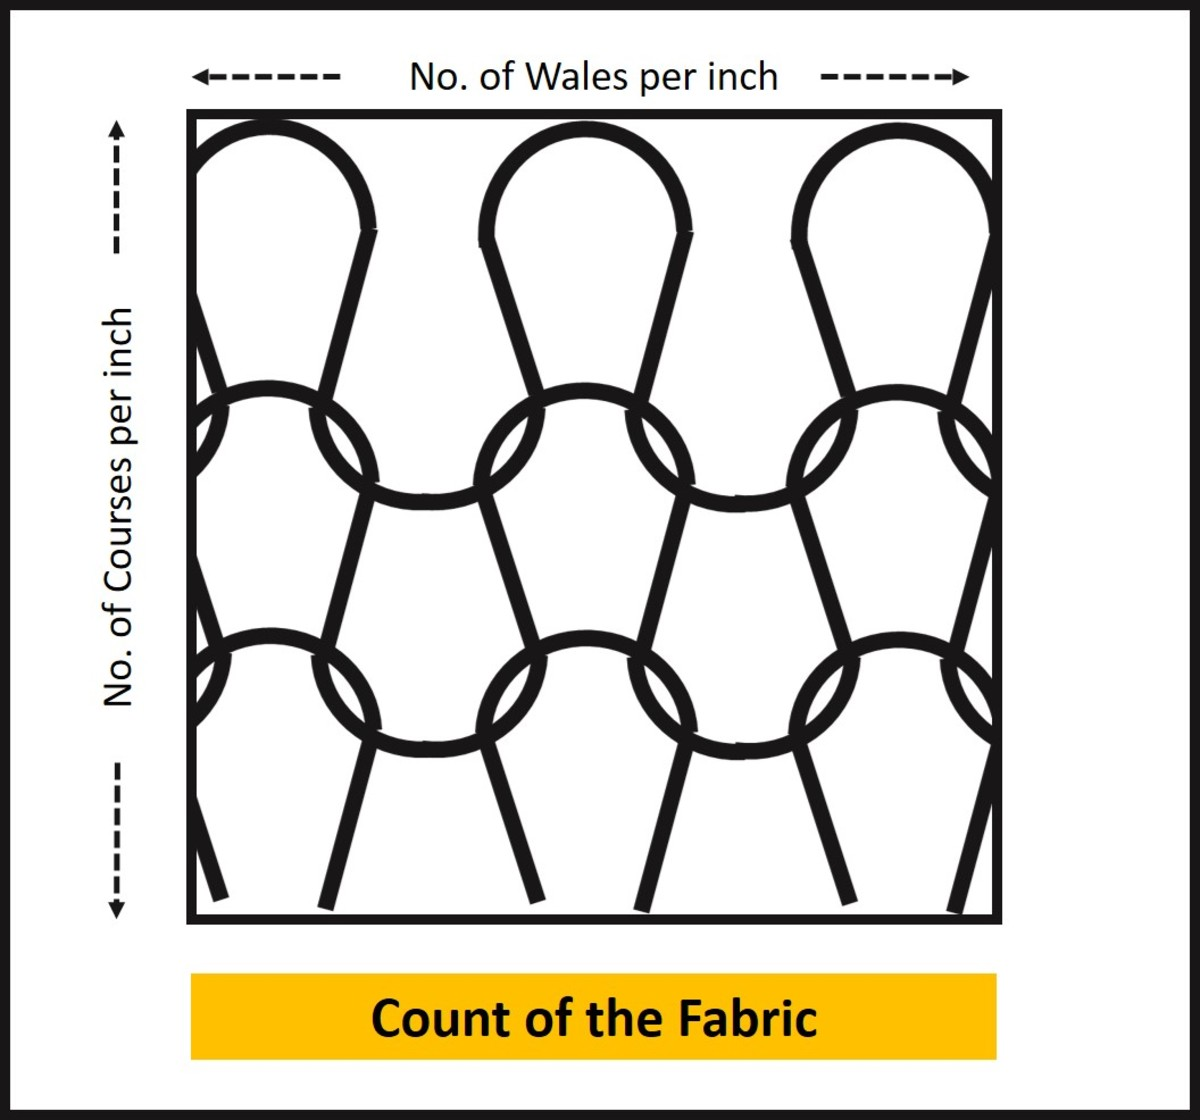 Count of the Fabric